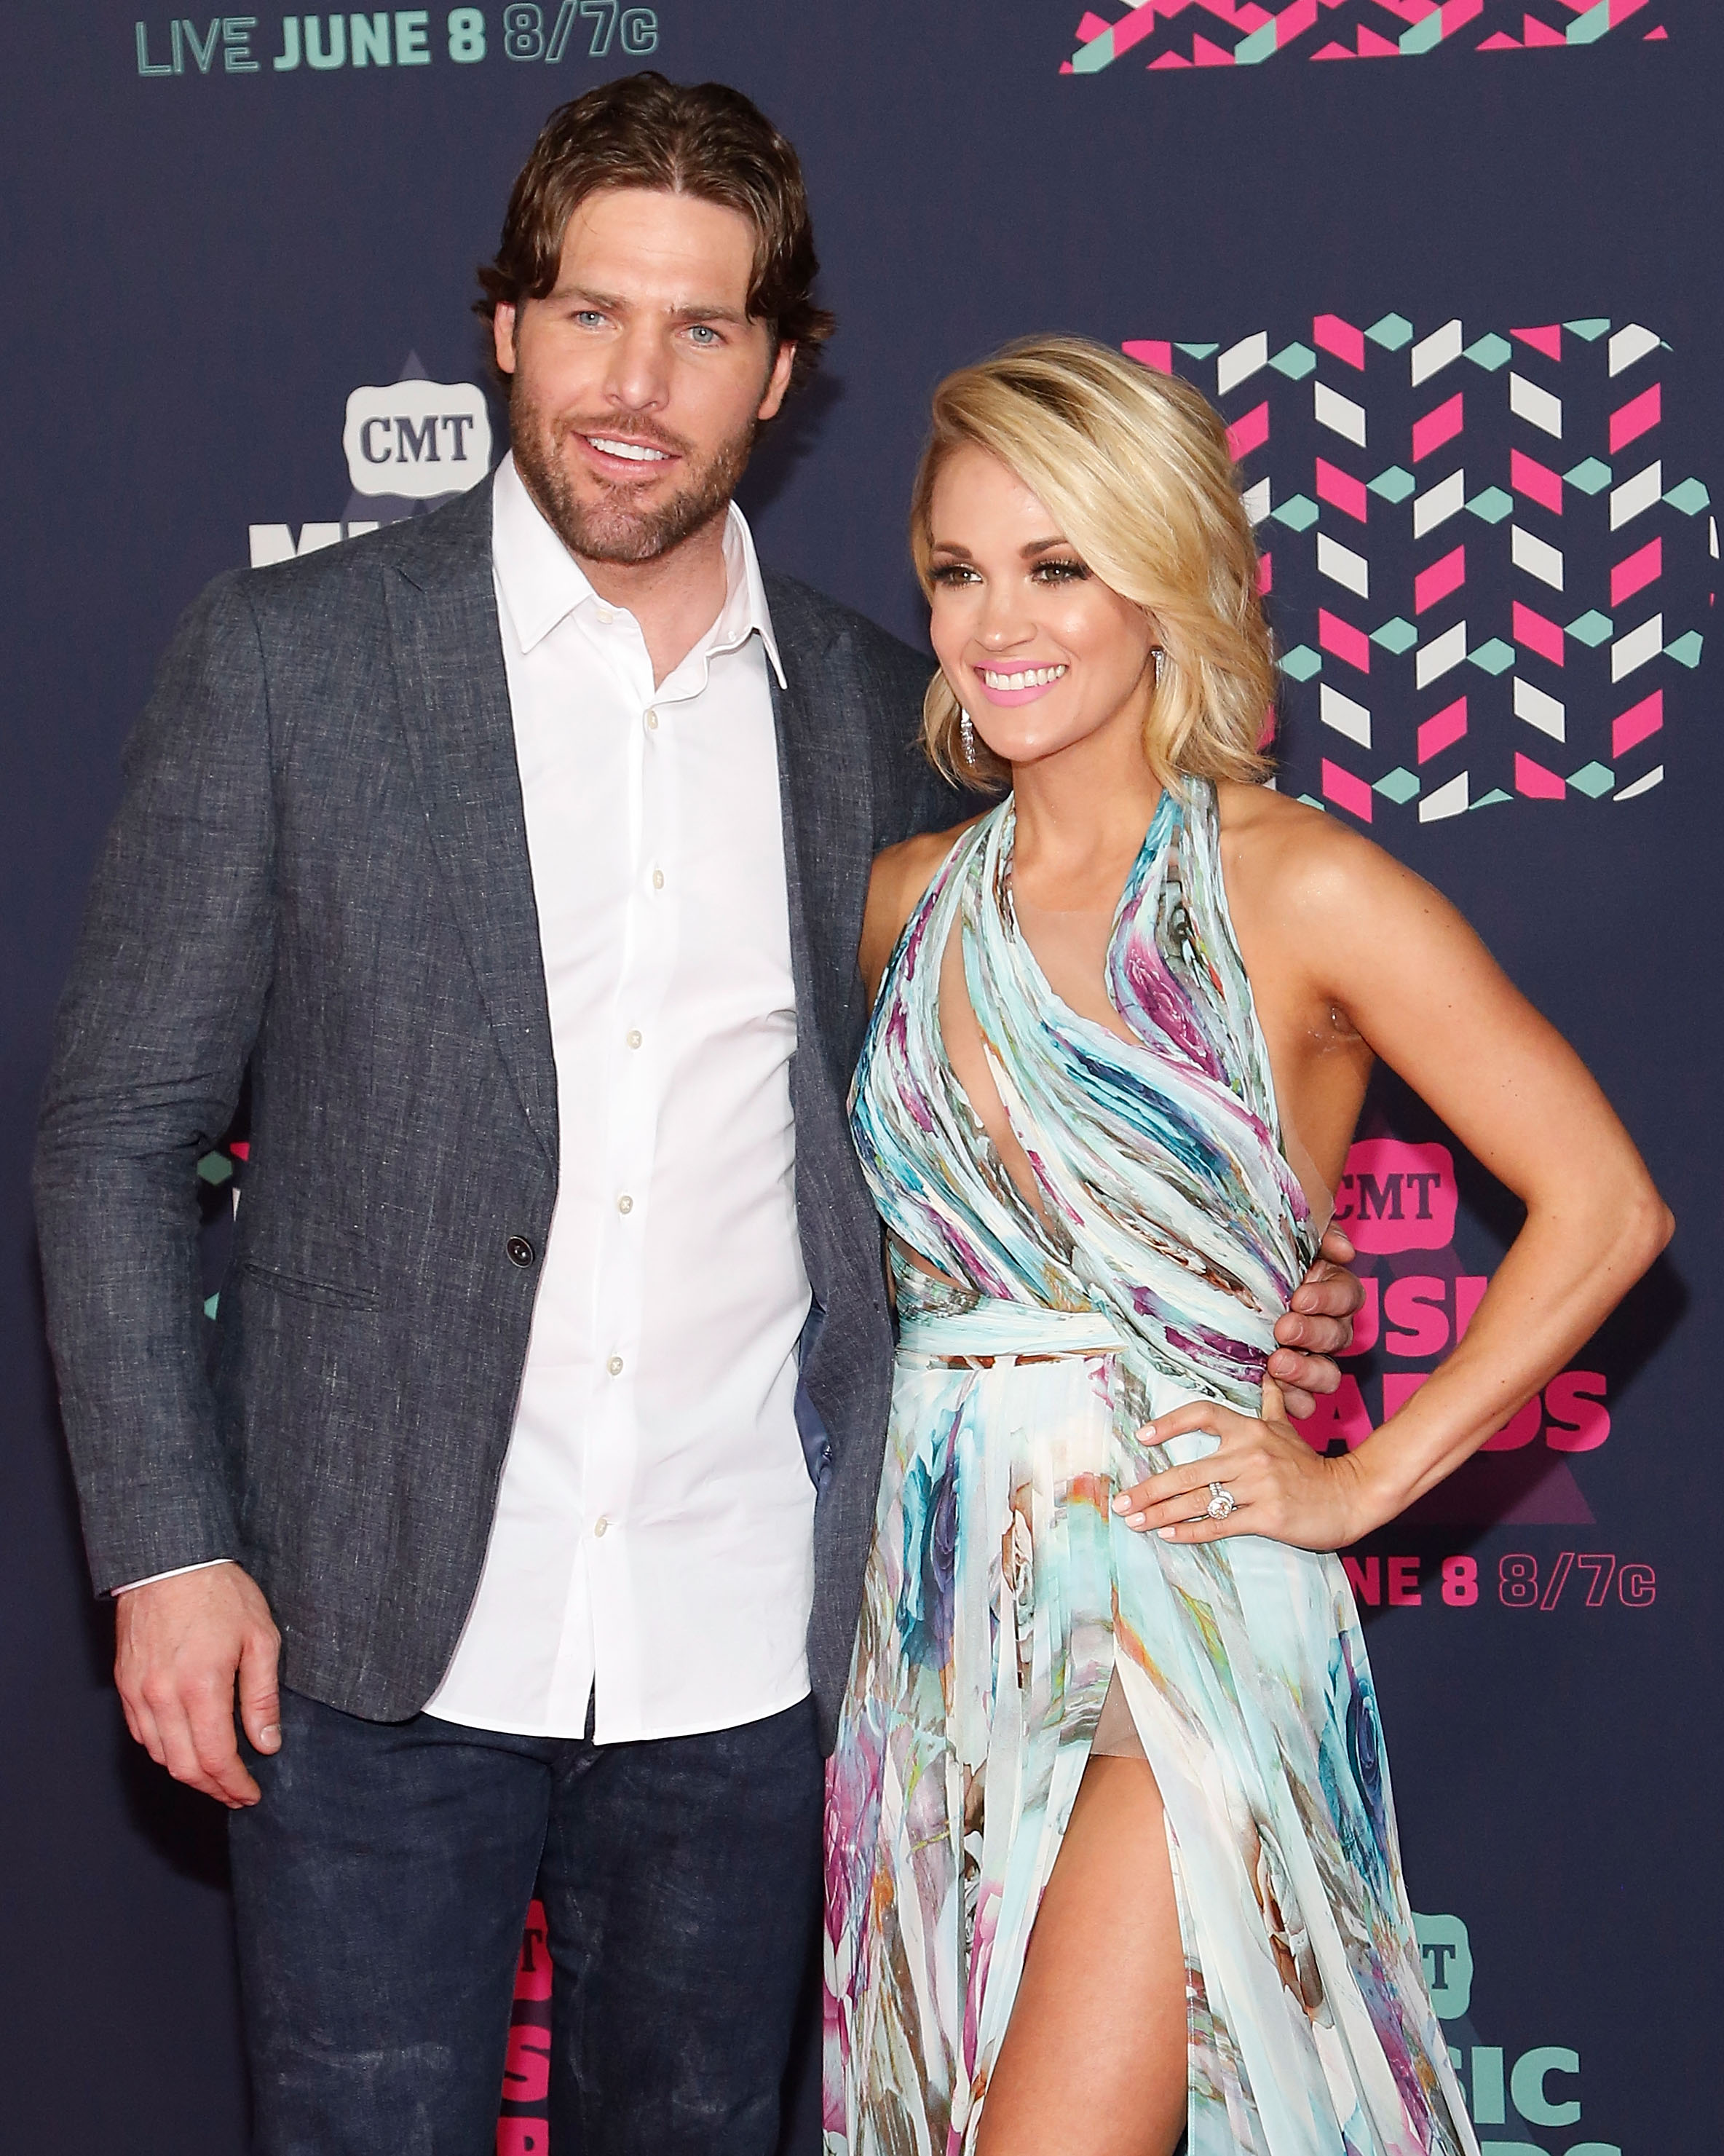 Carrie Underwood with her husband